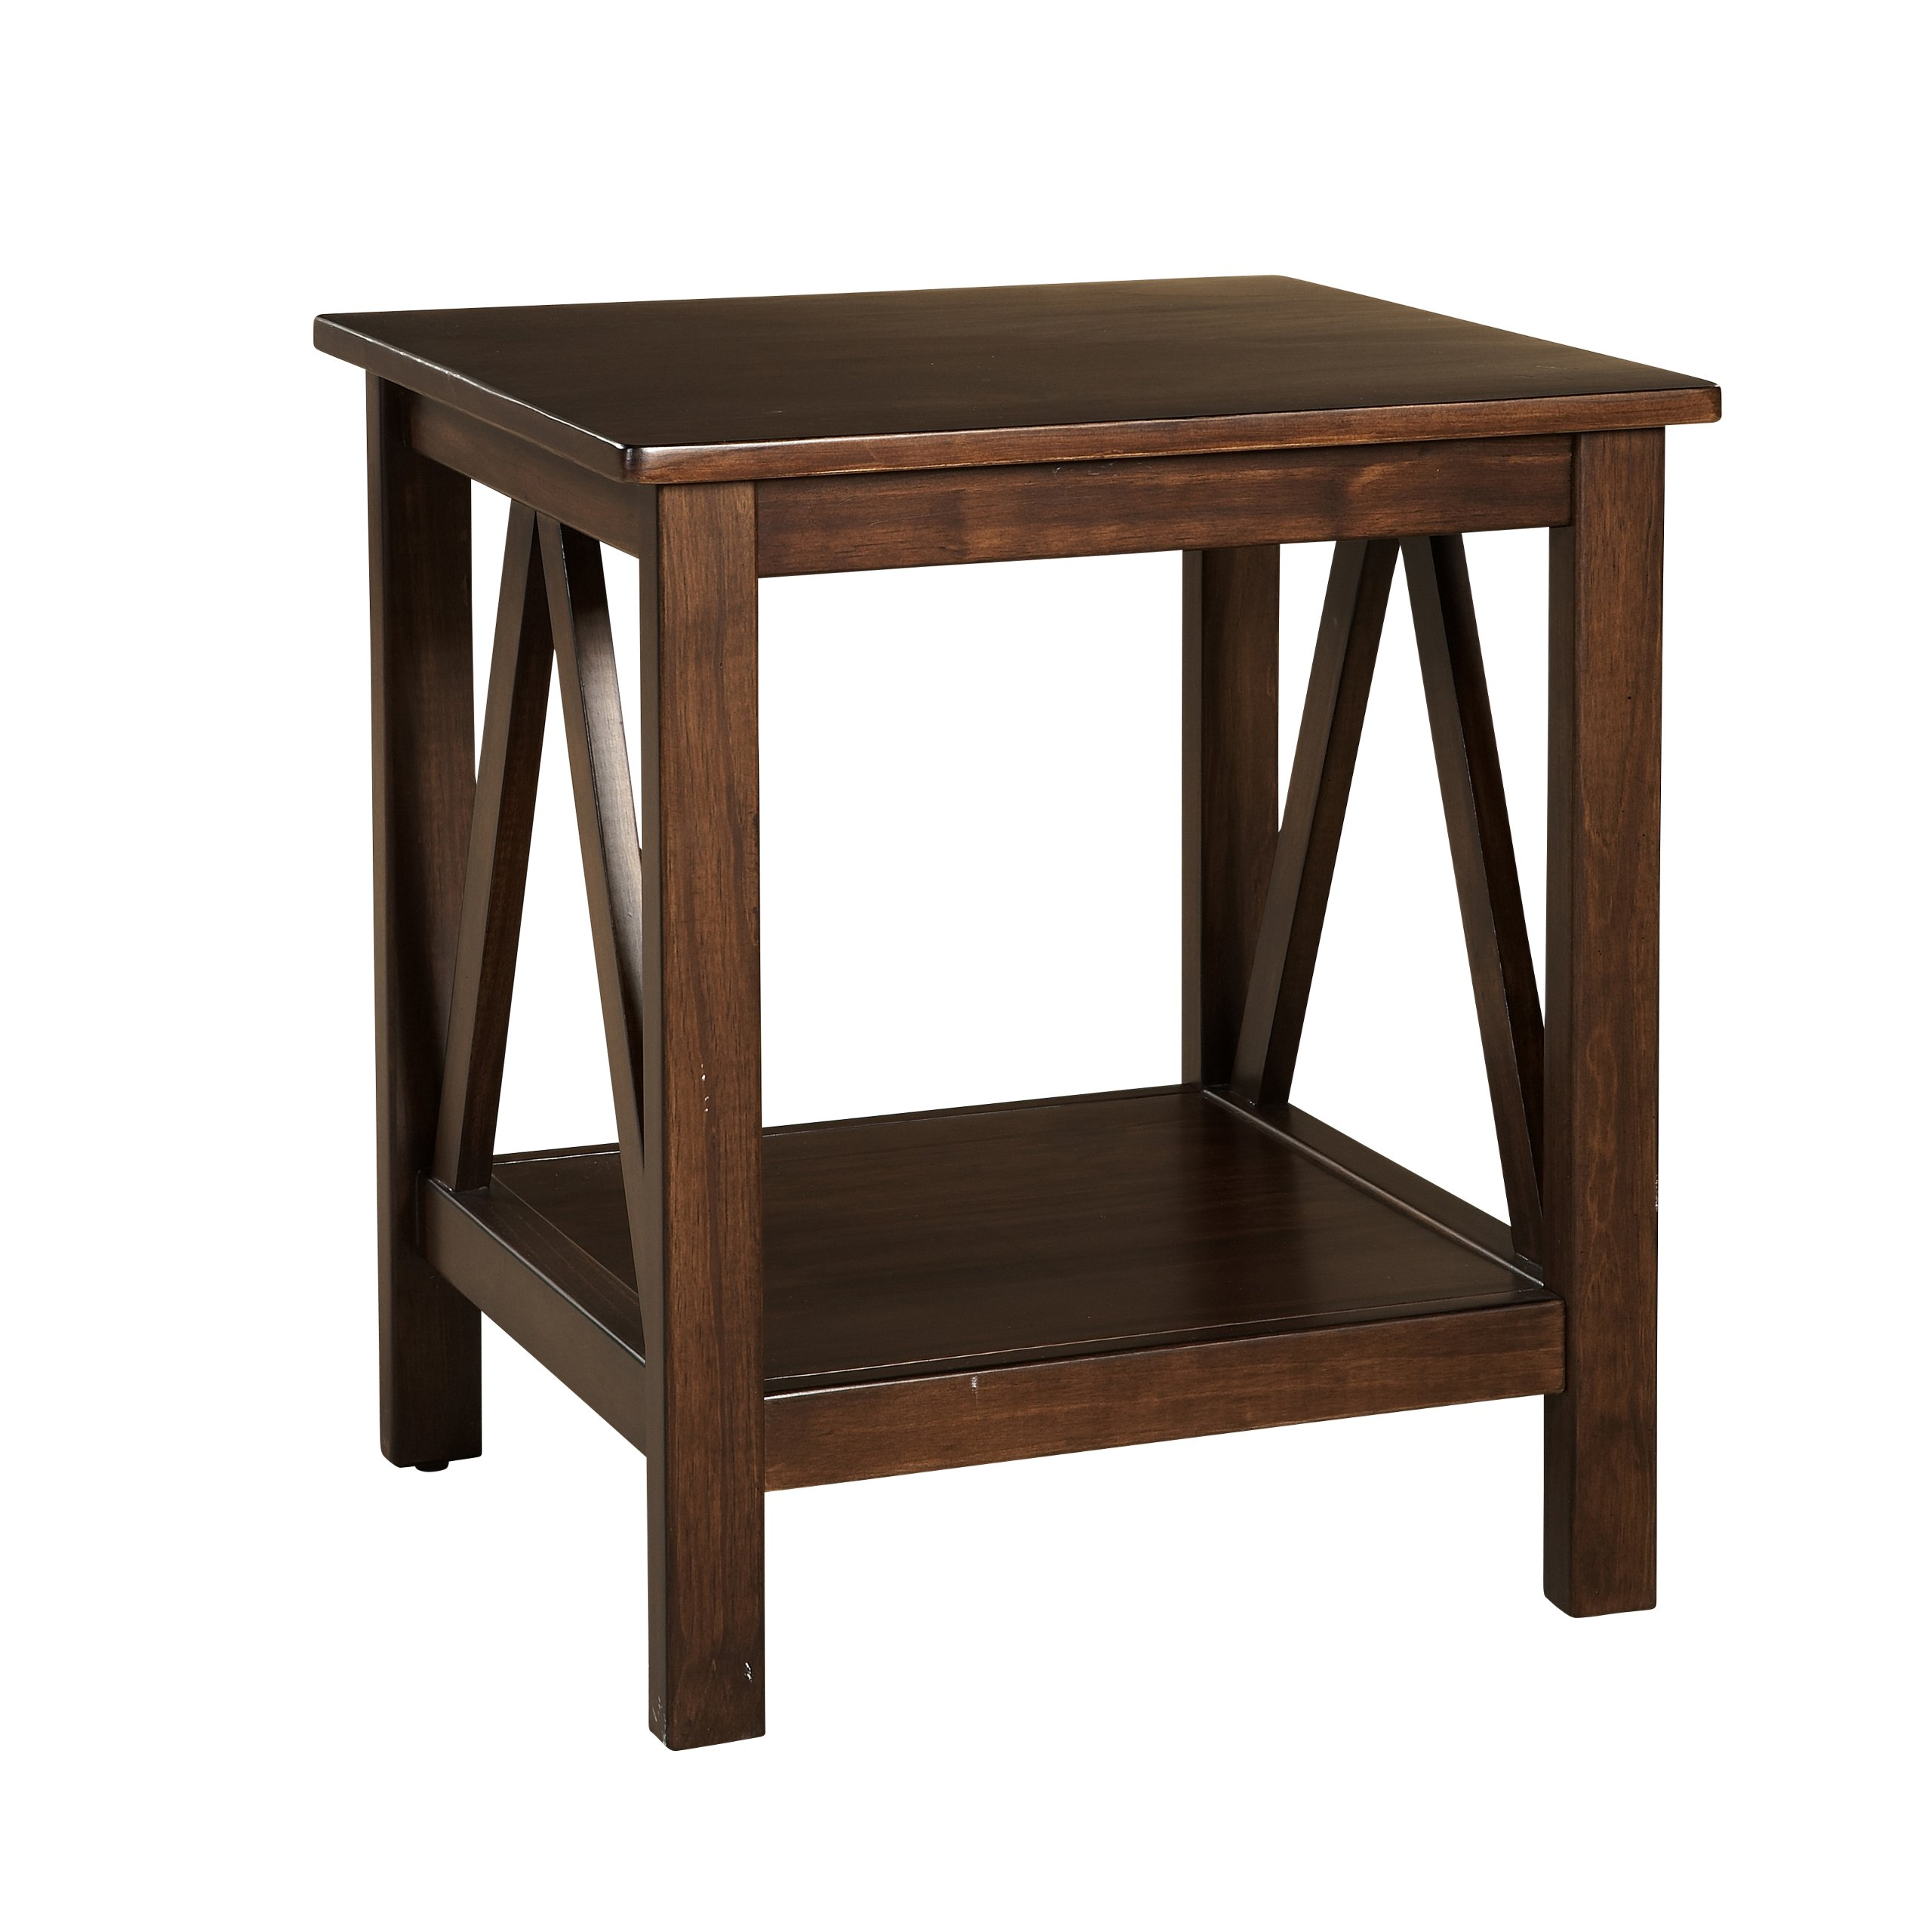 Linon Home Decor Titian Antique End Table - Antique Tobacco Finish Simple yet eye-catching design Versatile Design - living-room-furniture, living-room, end-tables - 81451etwRtL -